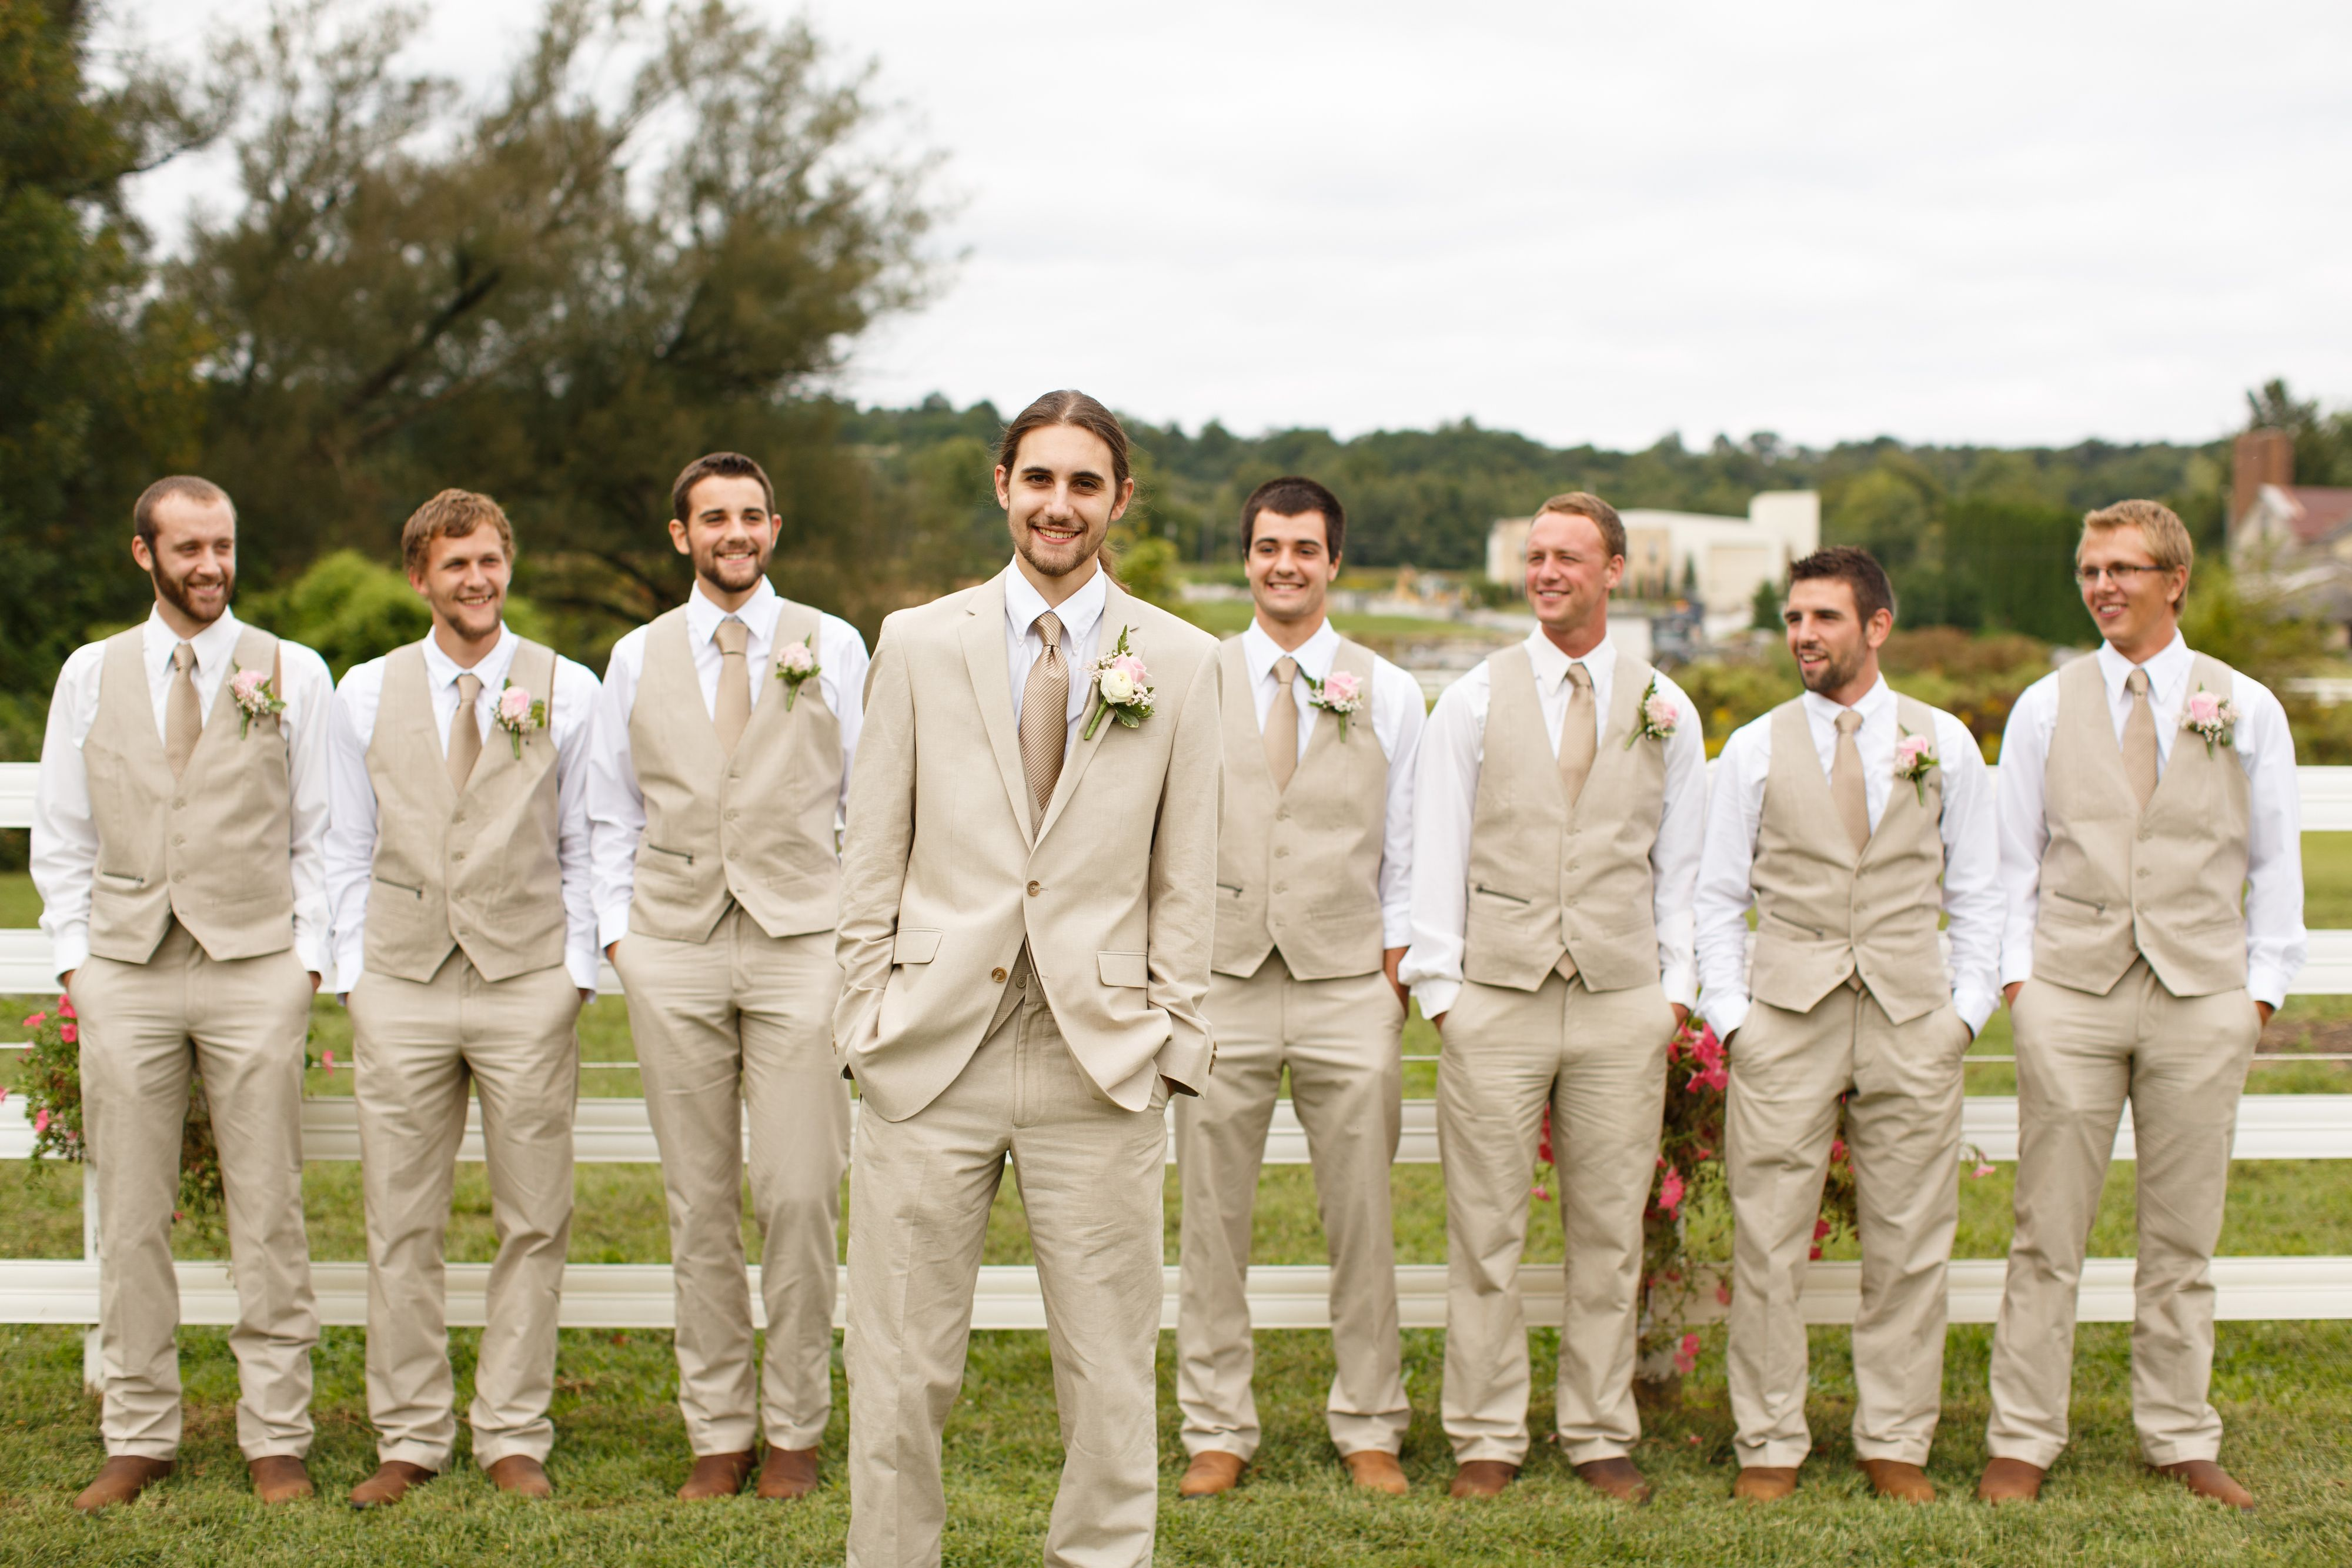 Also A Great Looking Group Of Guys Fall Rustic Backyard Wedding Groomsmen Khaki Vests